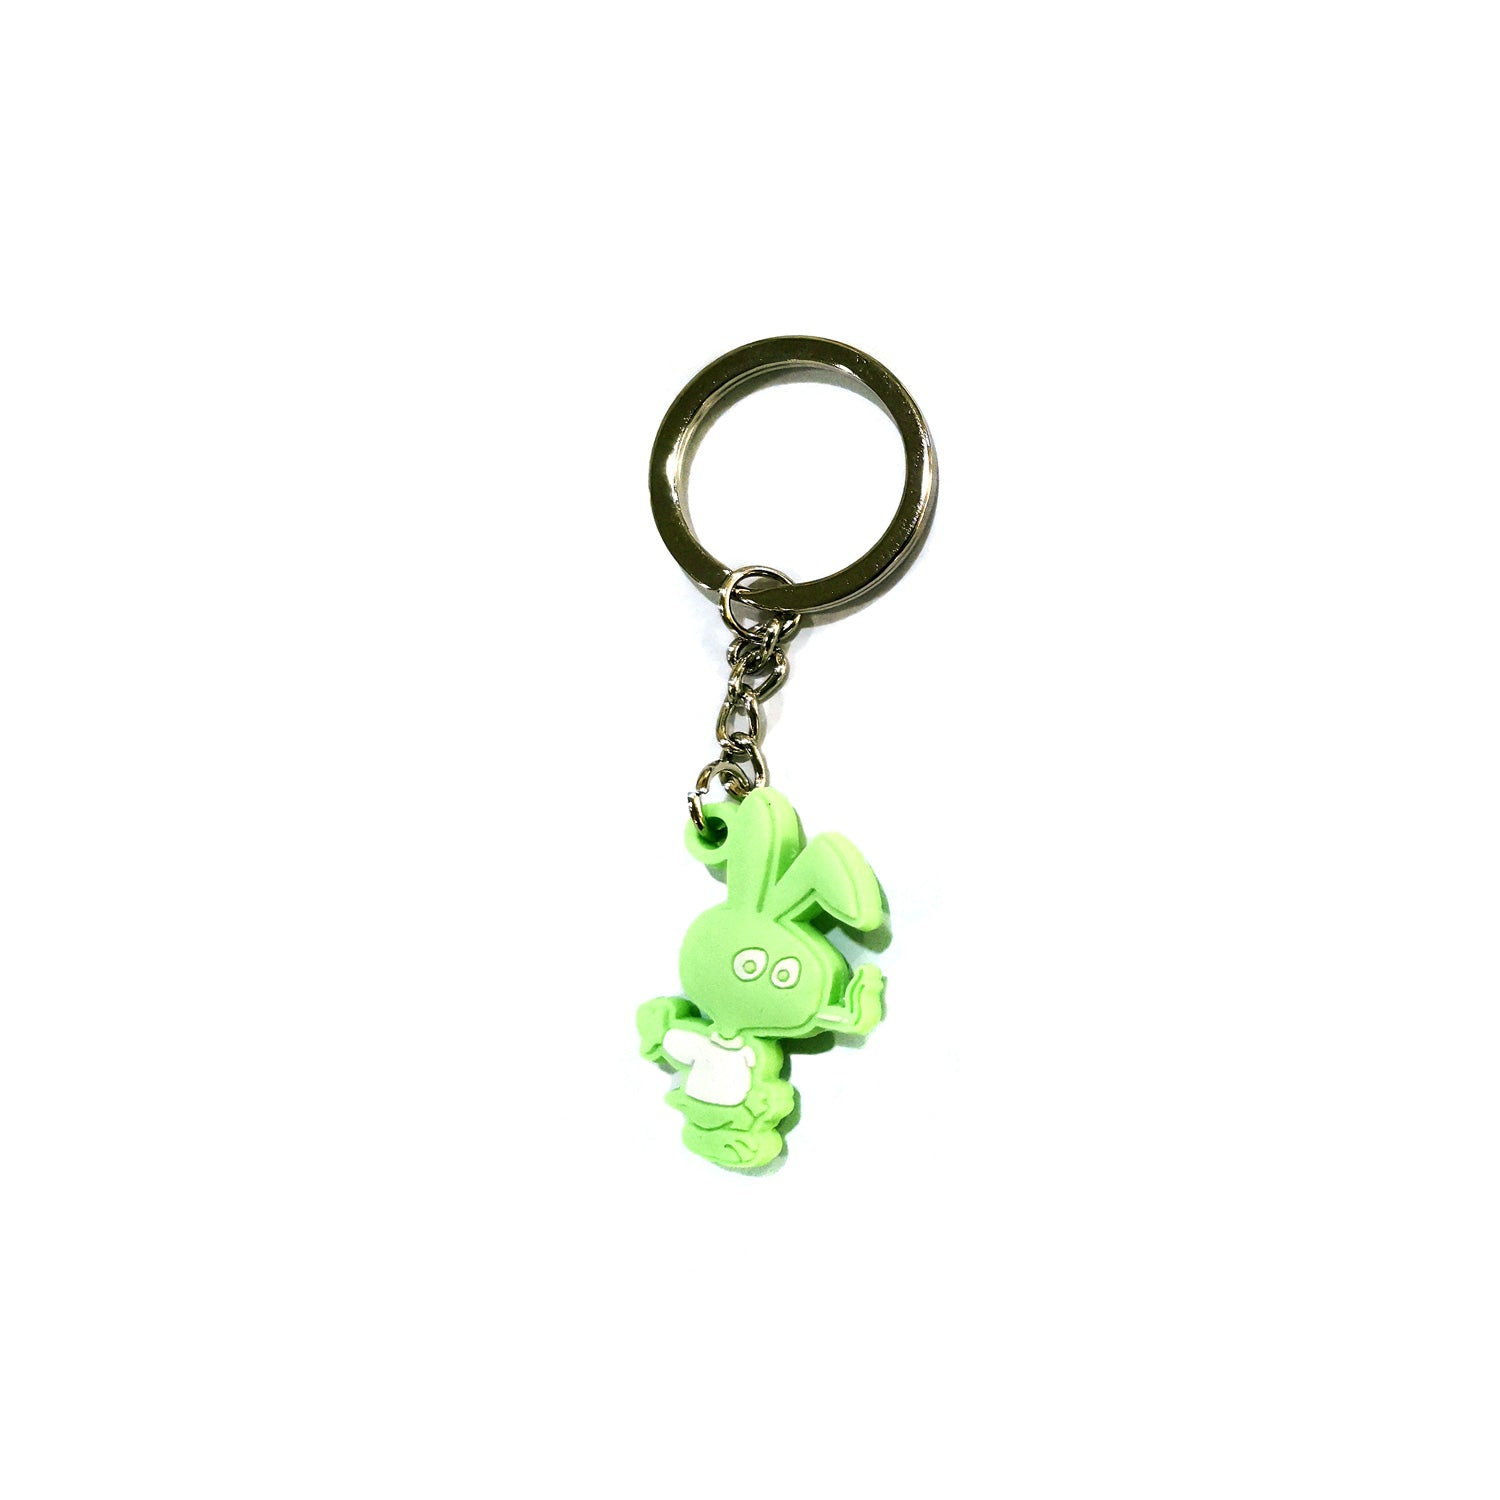 COLD WORLD ACCESSORIES GREEN O/S COLD BUNNY PVC KEY CHAIN